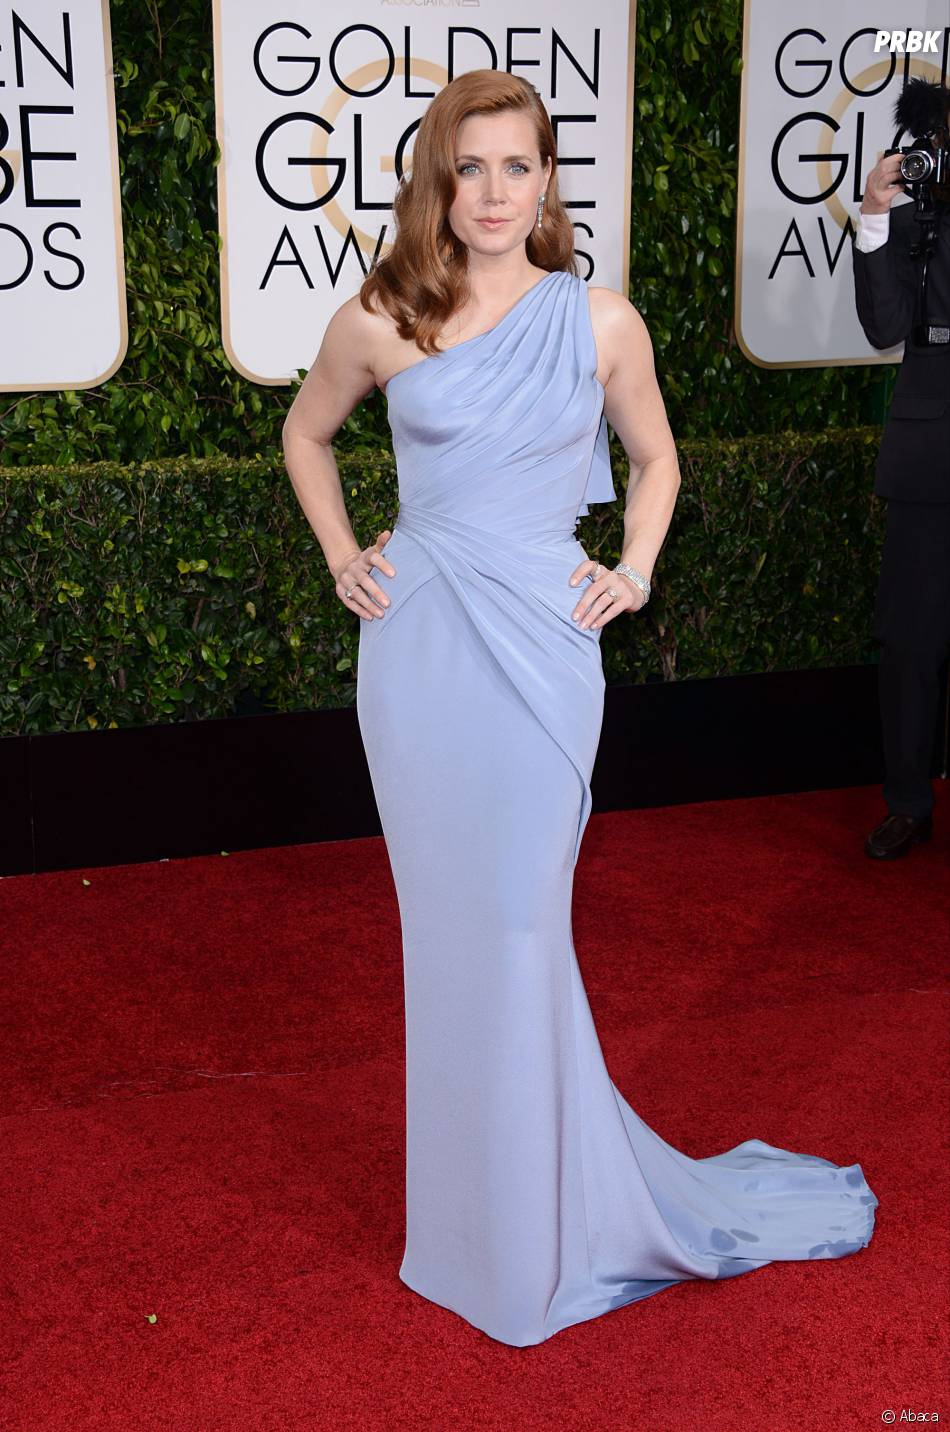 Amy Adams sur le tapis rouge des Golden Globes, le 11 janvier 2015 à Los Angeles